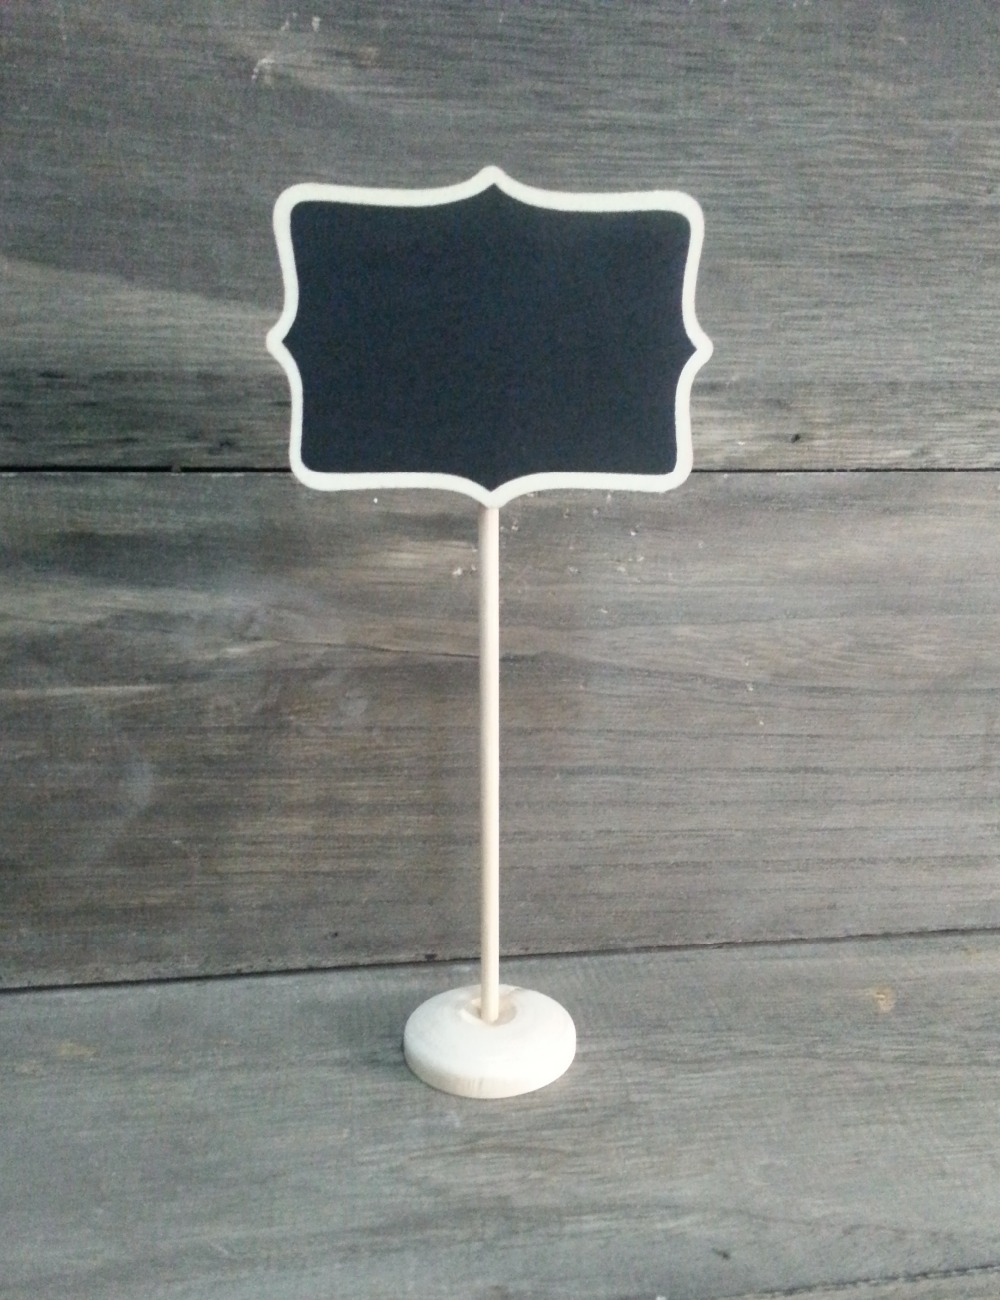 Wave Shape Black board for flower pot of Garden ,name tag, price tag board